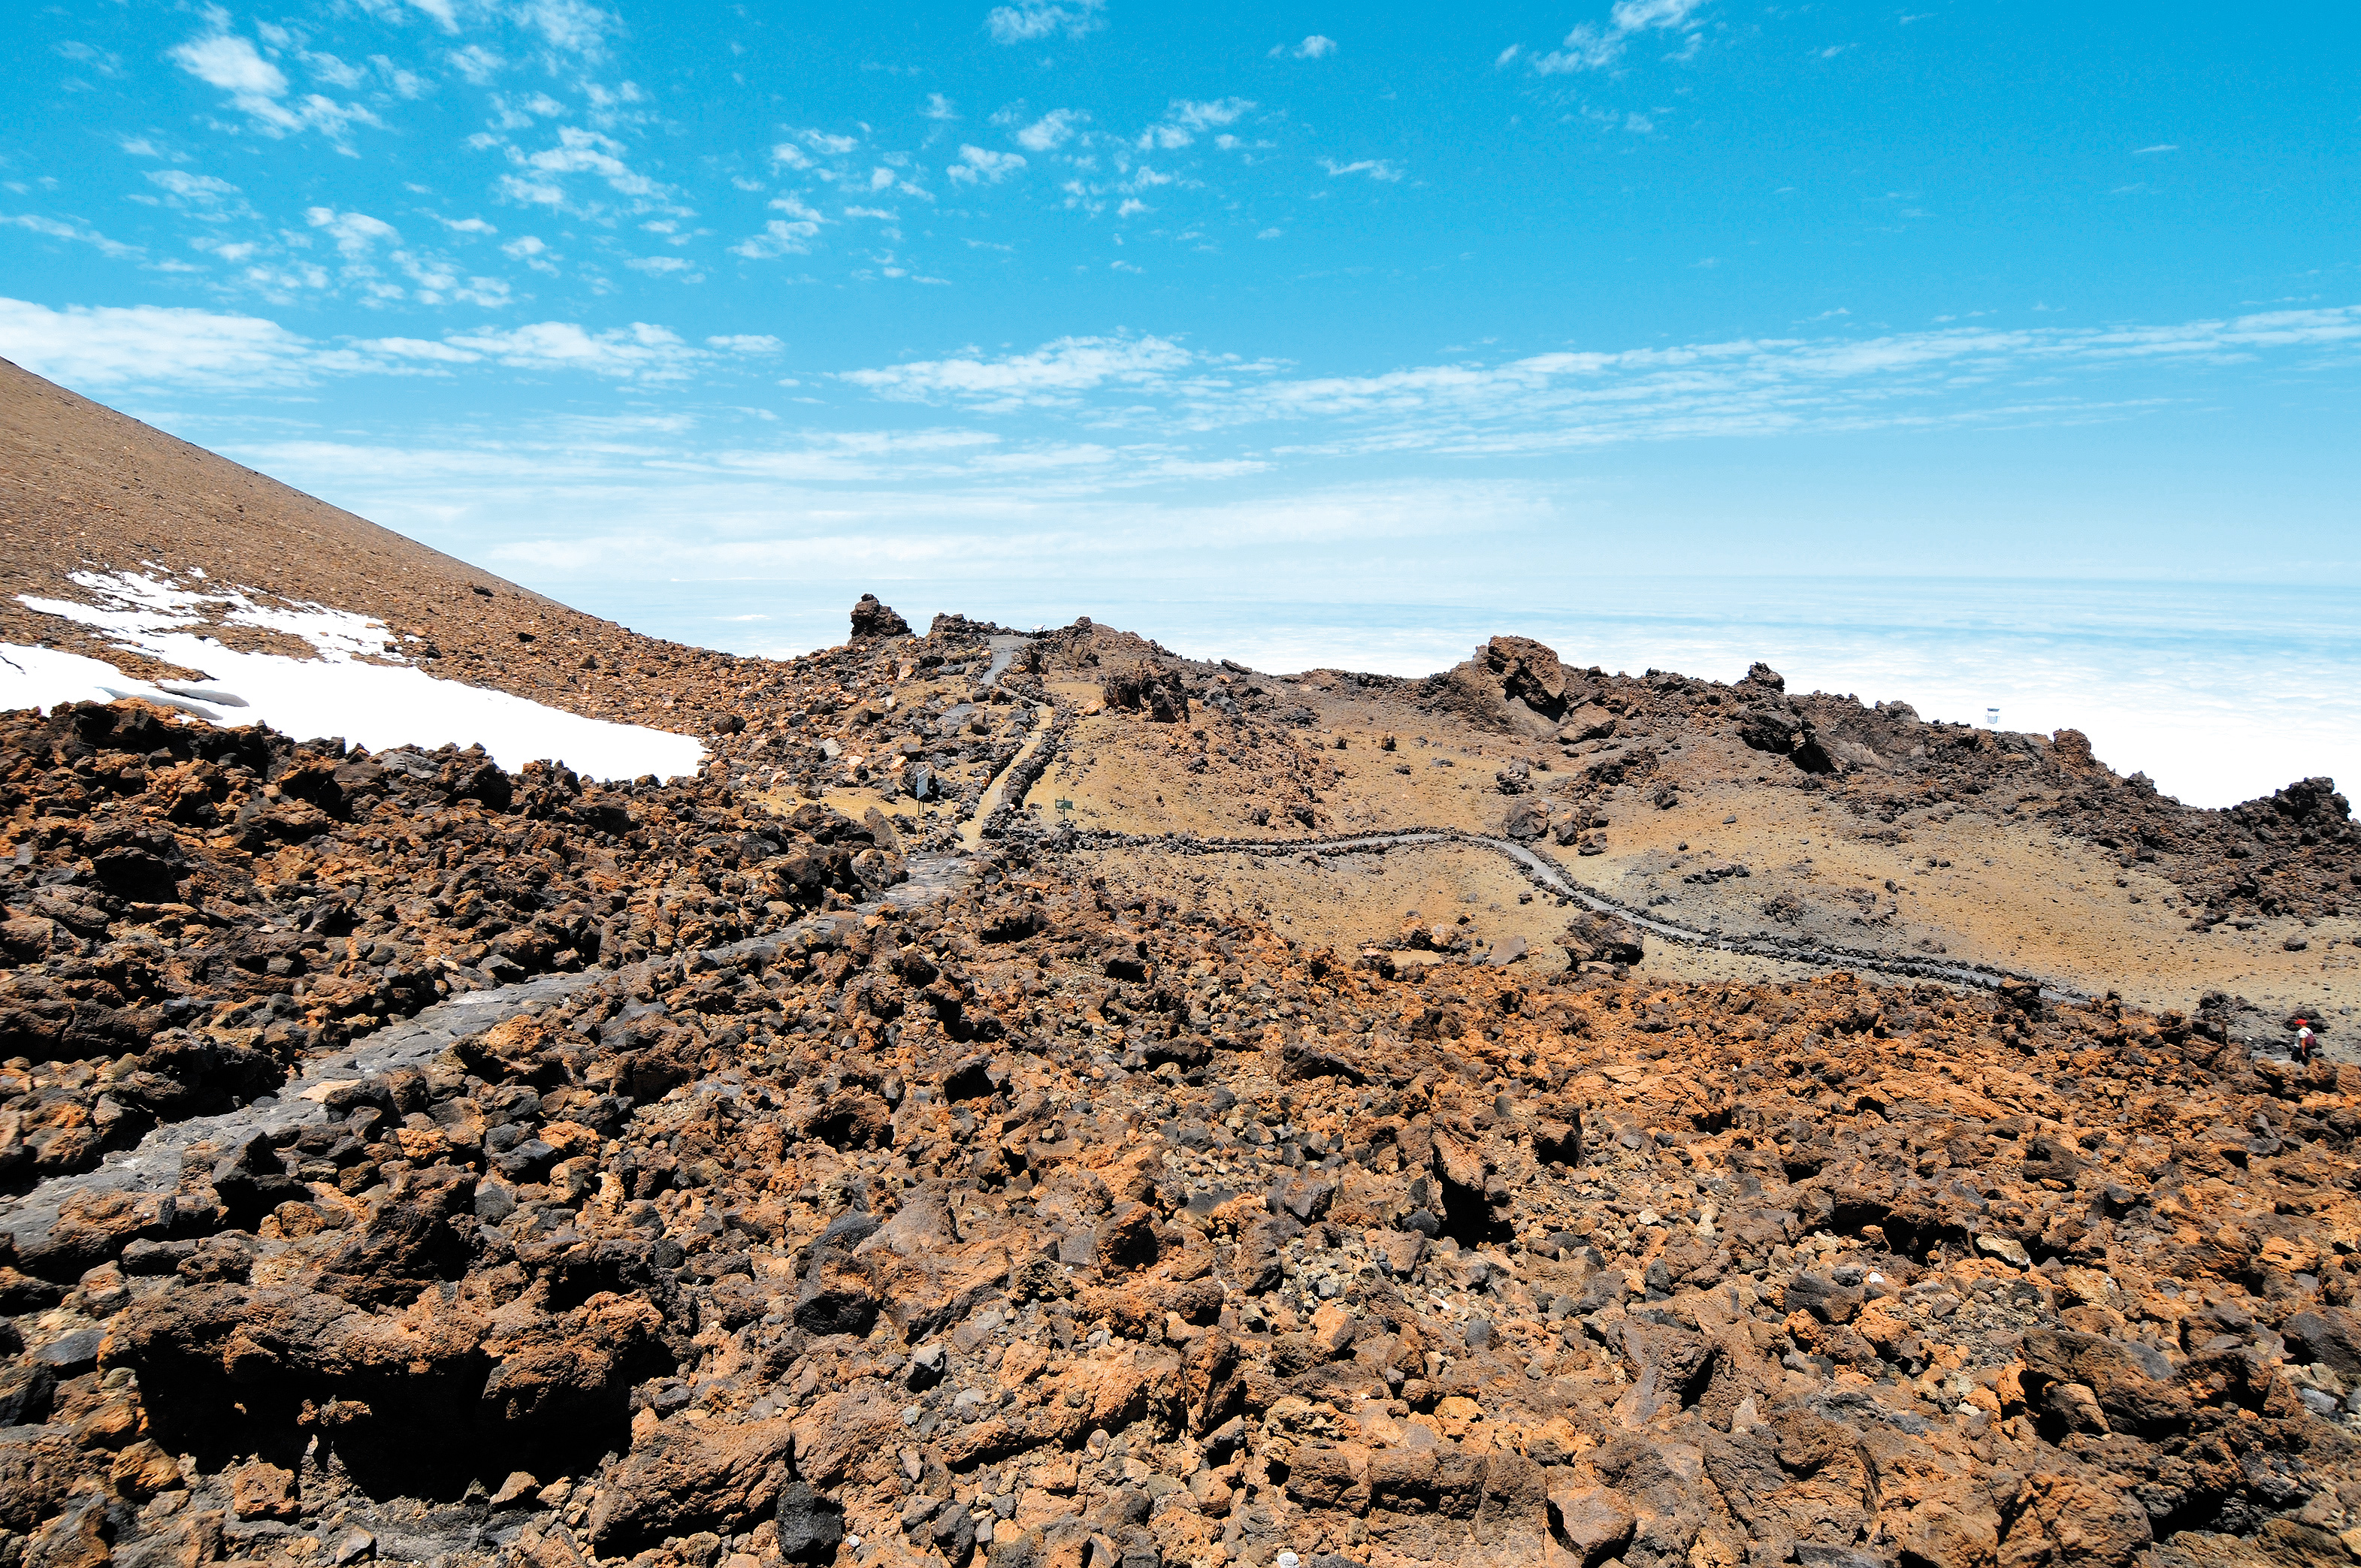 Alternatives pour monter au Teide sans autorisation : La Fortaleza